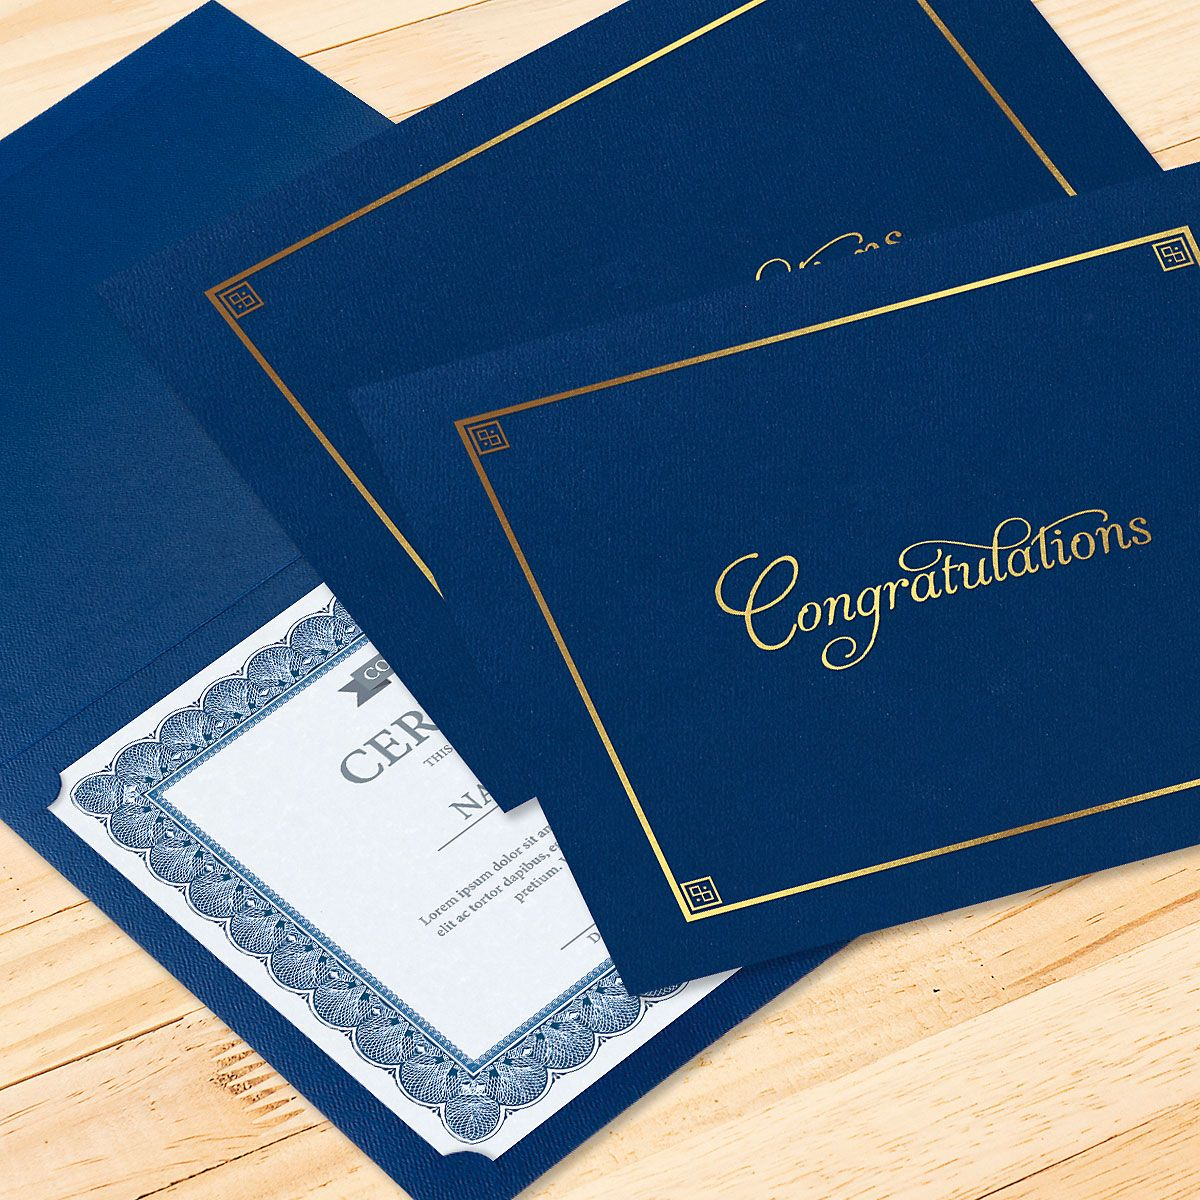 Congratulations Blue Certificate Folder with Gold Border - Set of 25